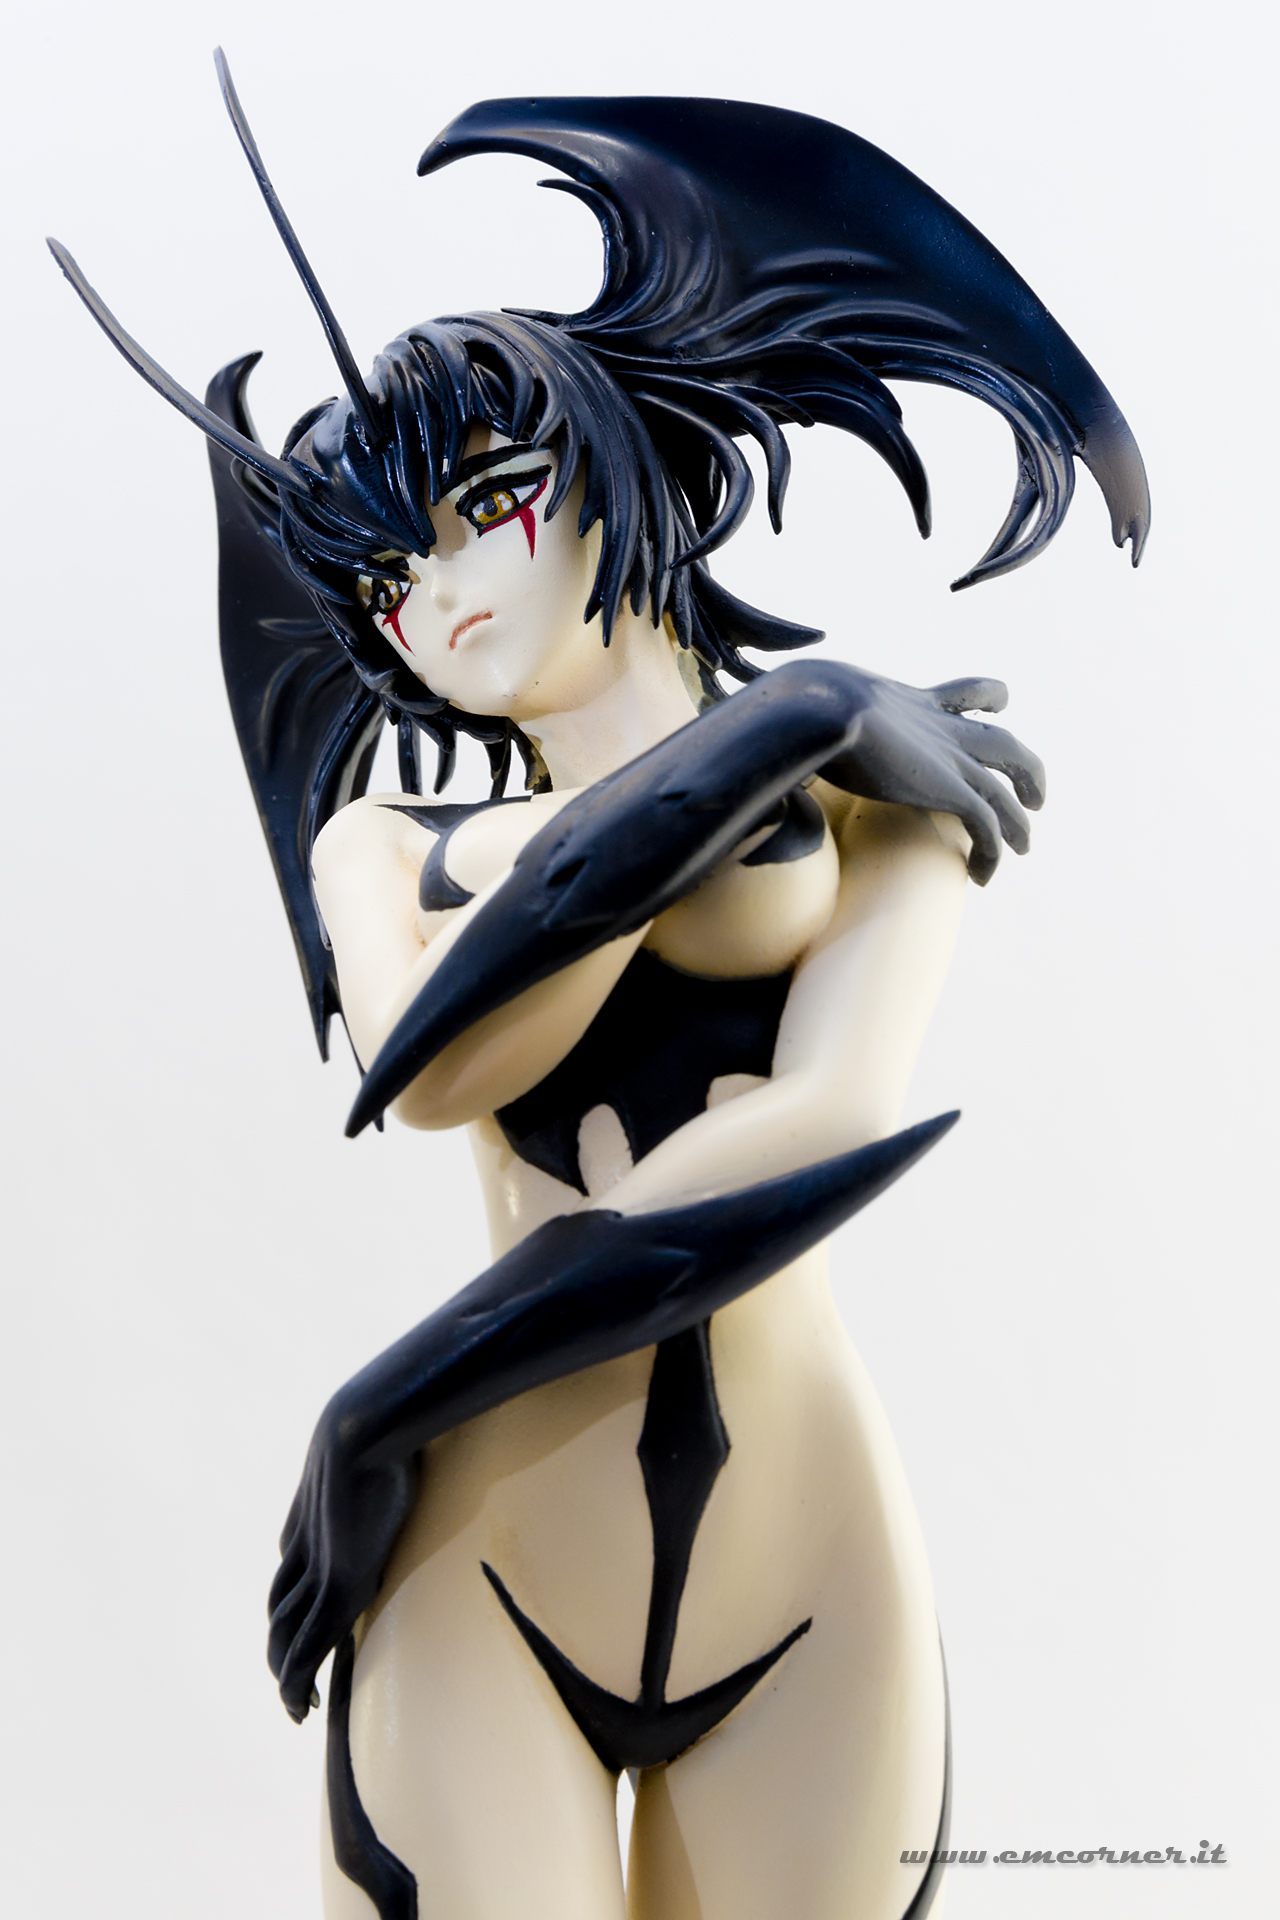 new-line-devilman-devil-lady-pre-painted-coldcast-12_-emcorner-it_